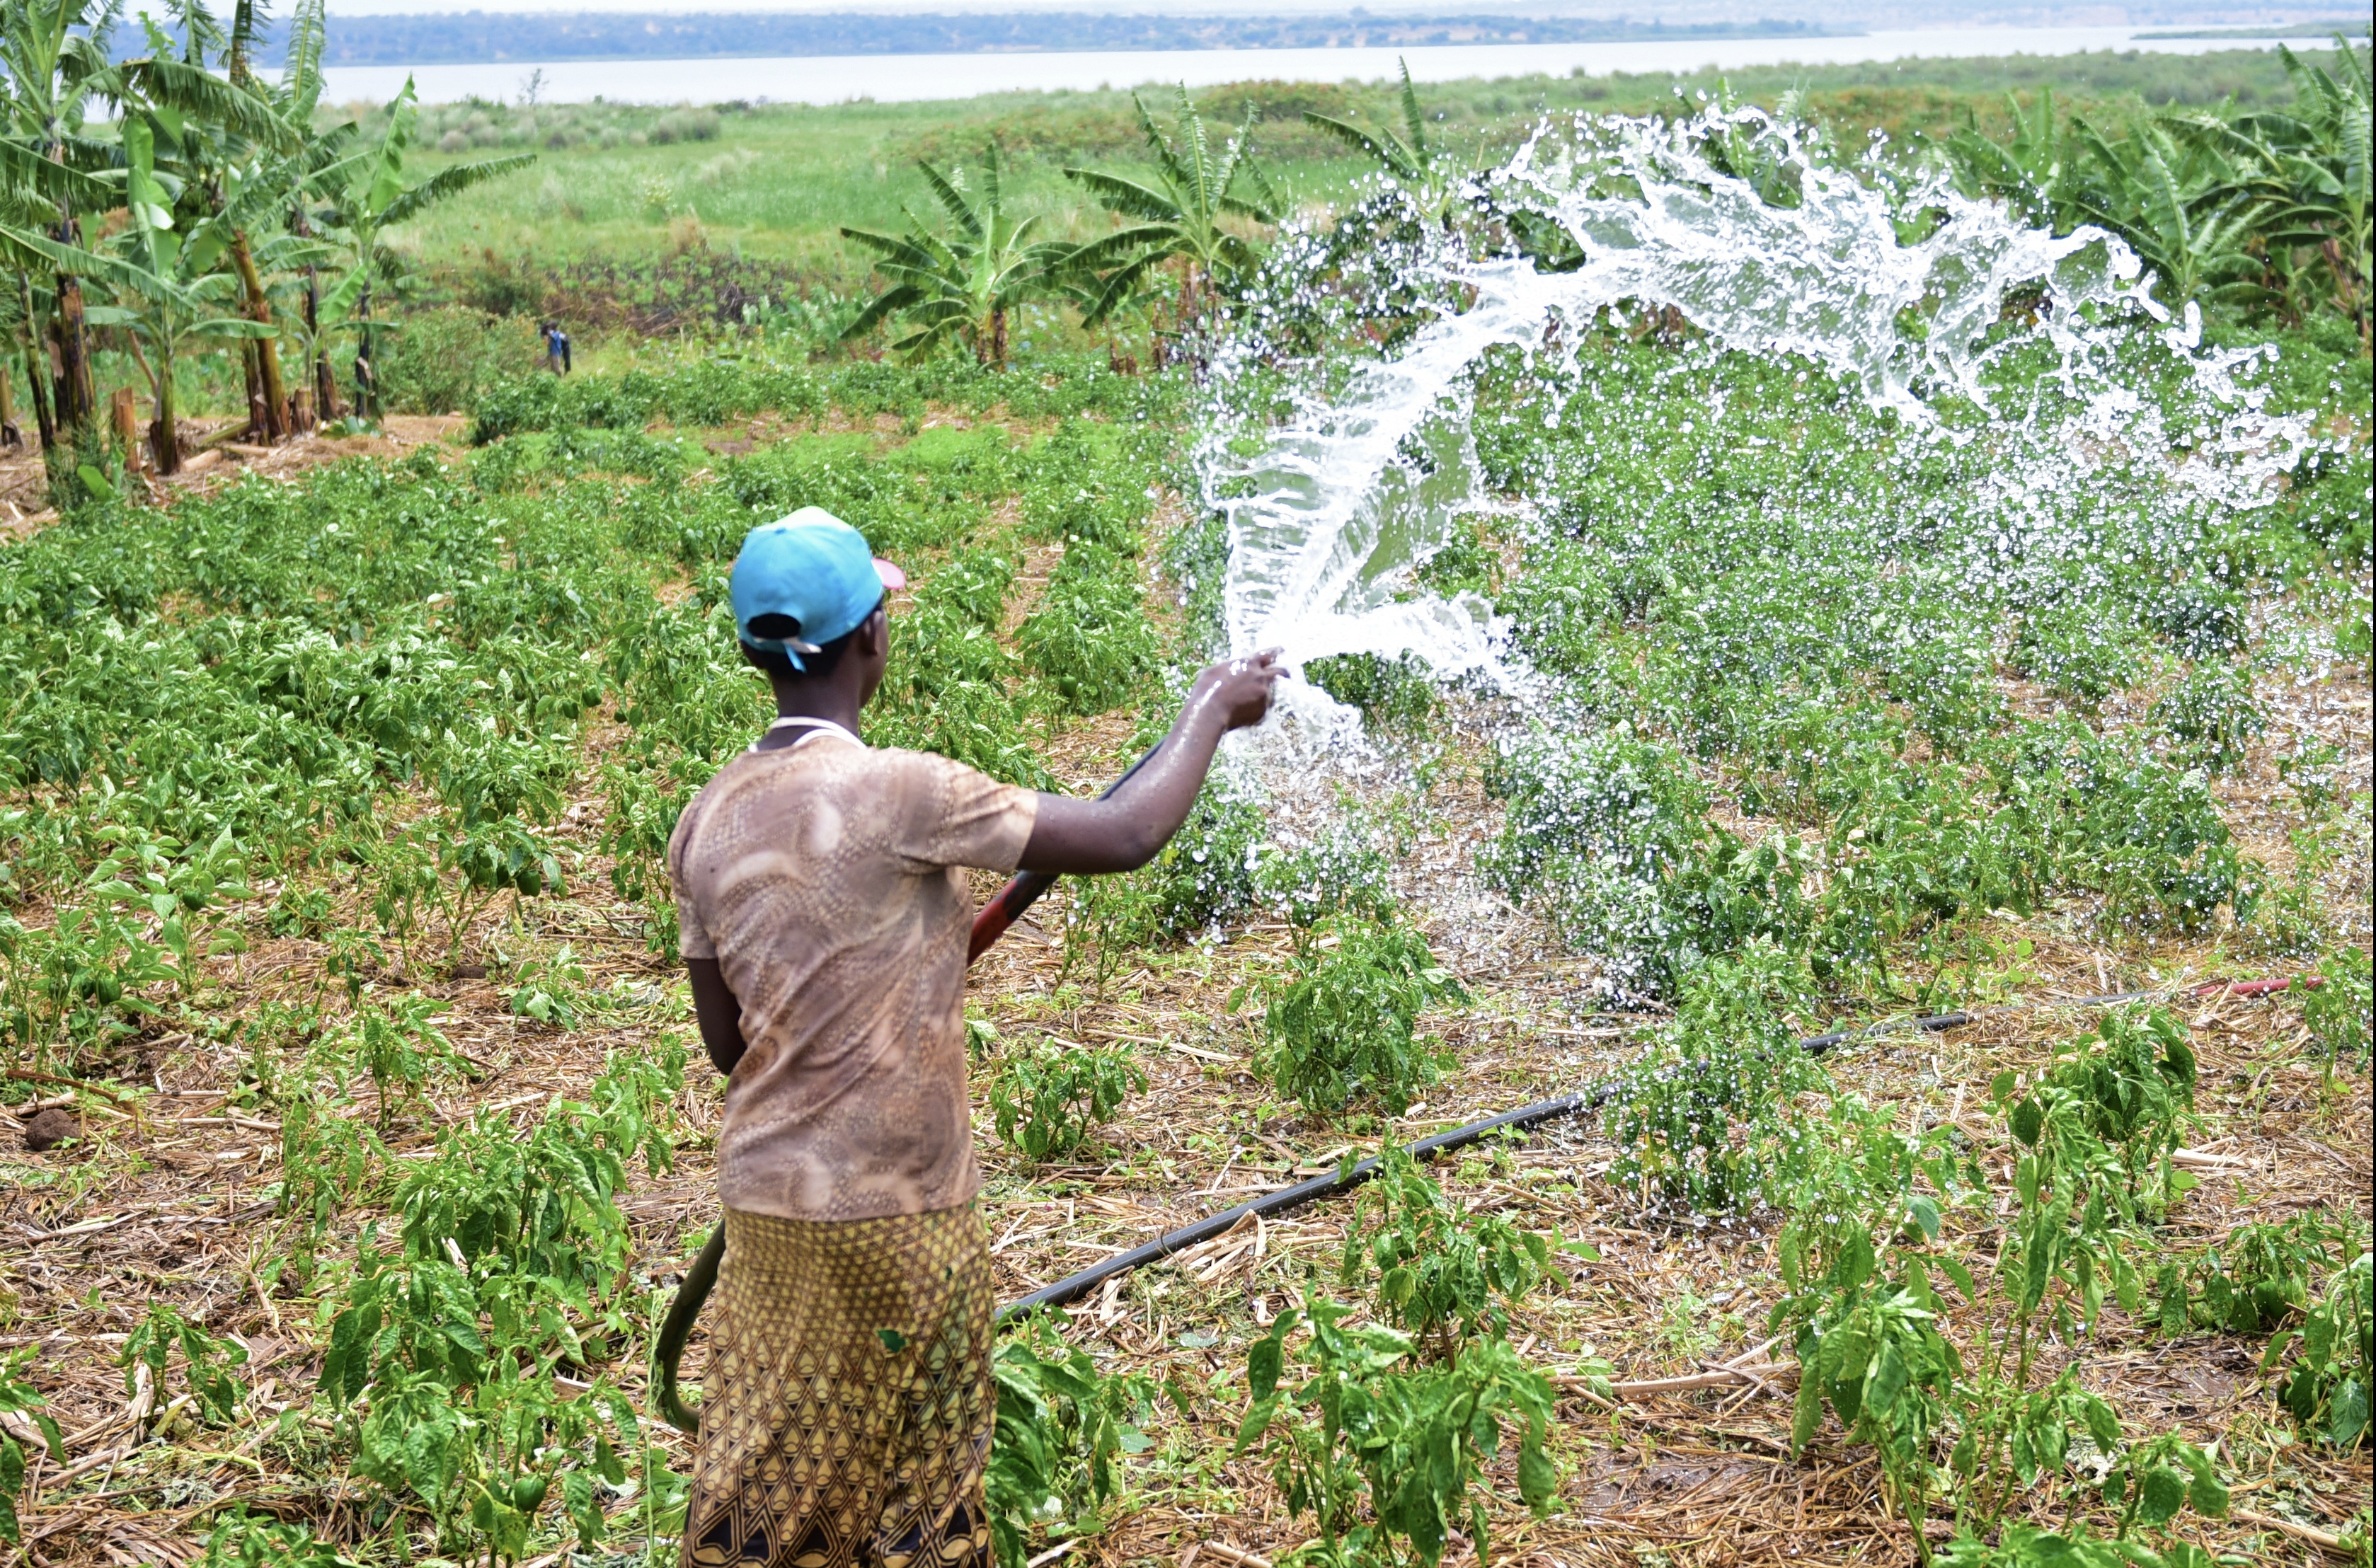 Productivity hinges on coordinated and timely management of water and other inputs. ©FAO/Teopista Mutesi